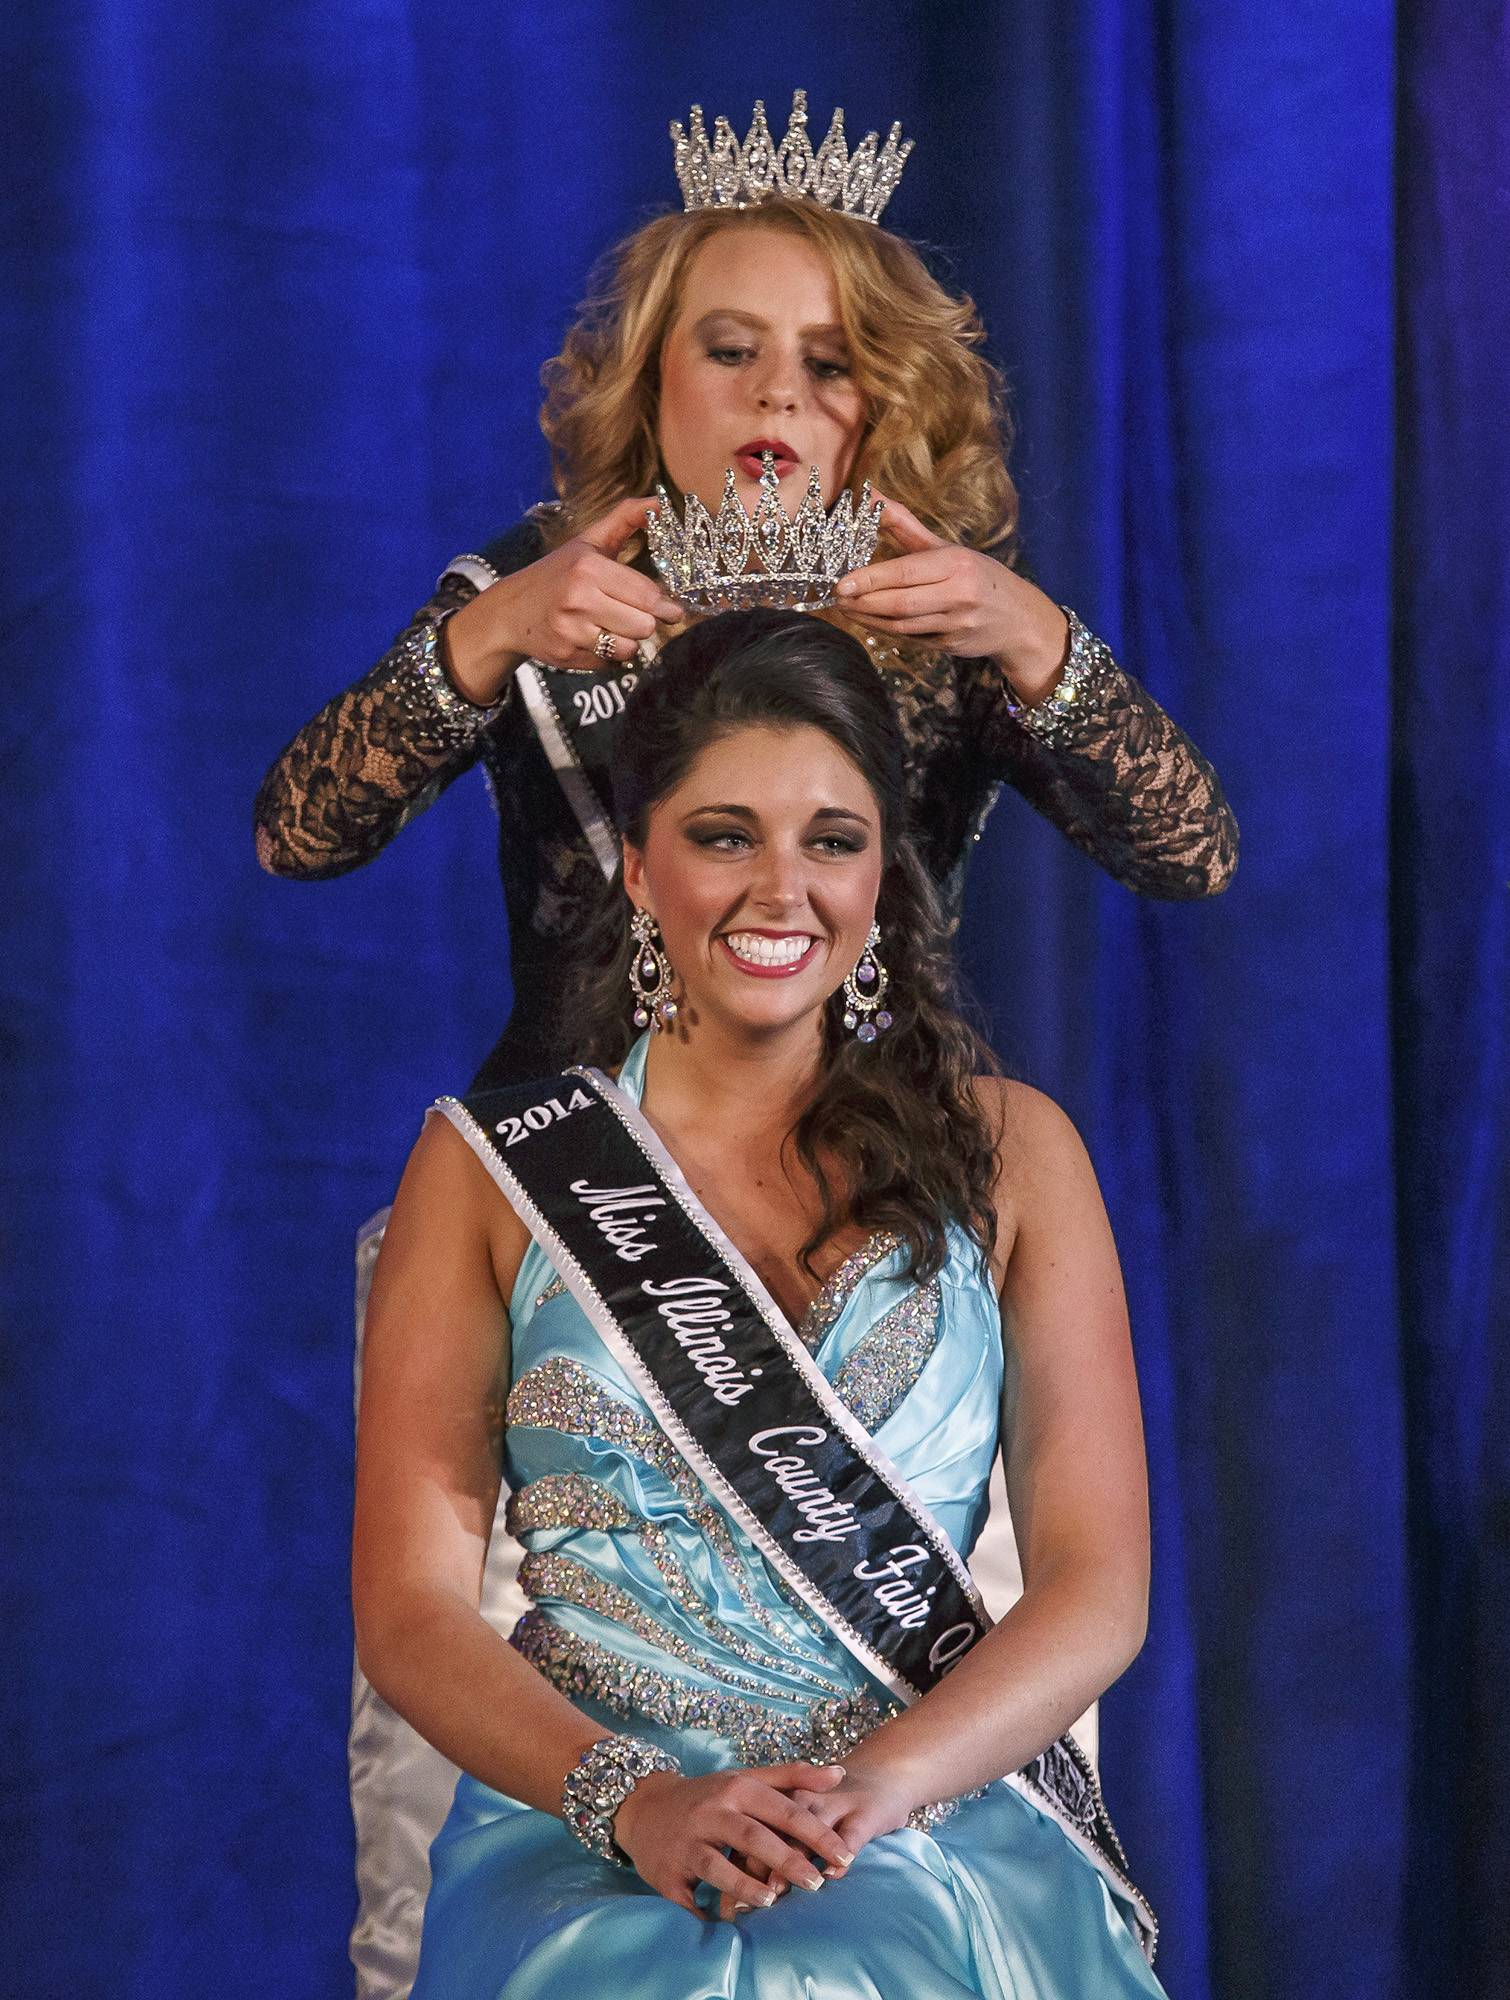 WisconsinMiss Montgomery County Fair Queen Summer Robbins, of Coffeen is crowned the 2014 Miss Illinois County Fair Queen by Amelia Martens, Miss Illinois County Fair Queen 2013, during the pageant in Springfield.